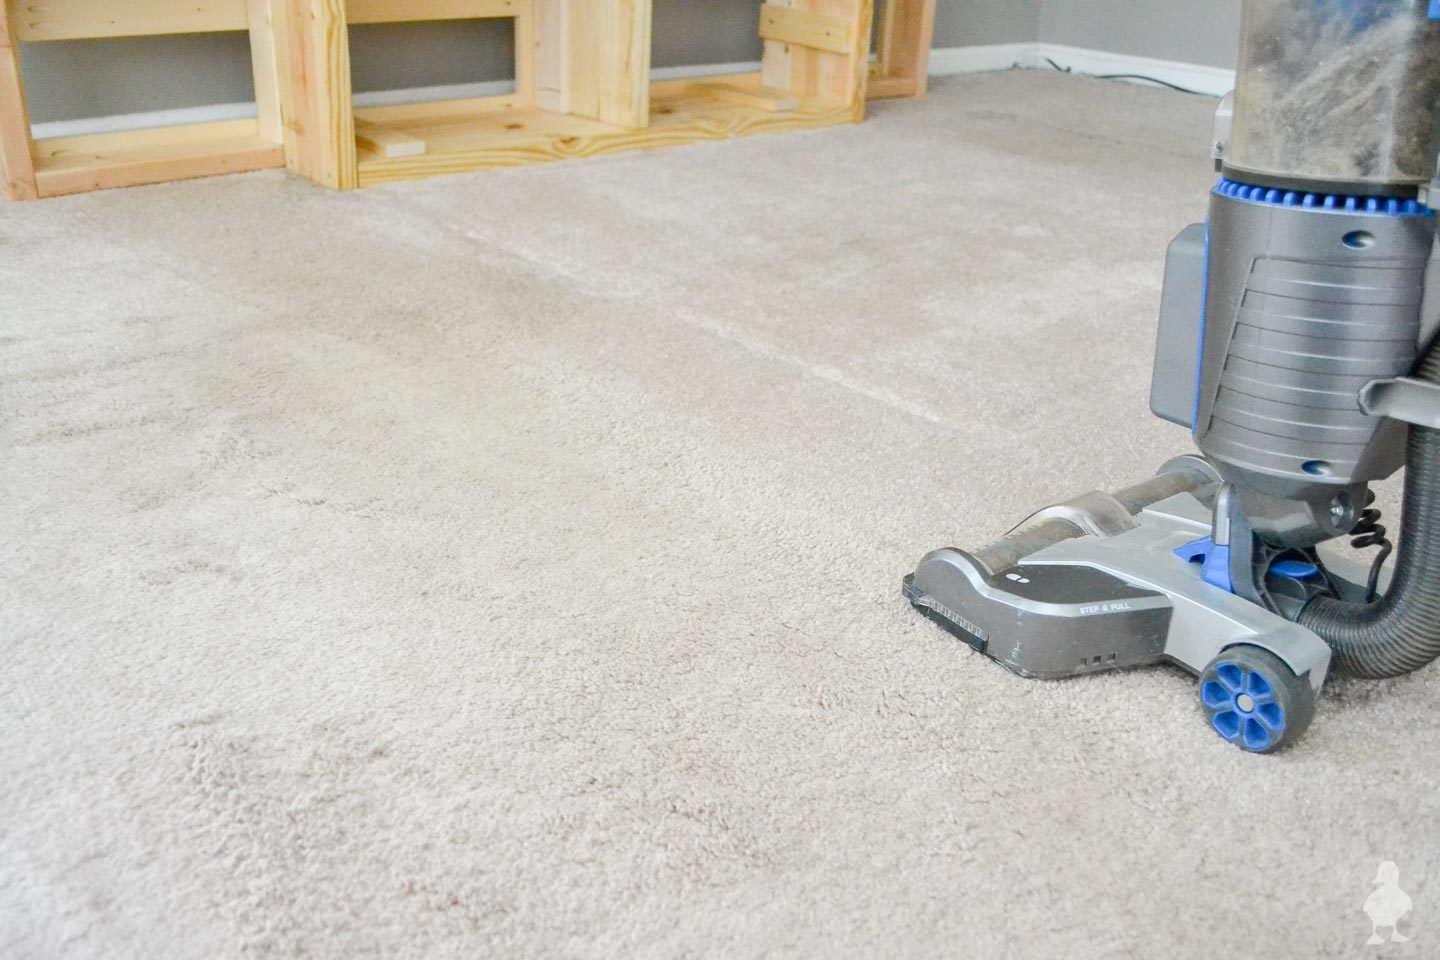 vacuuum carpet before laying down new rugs